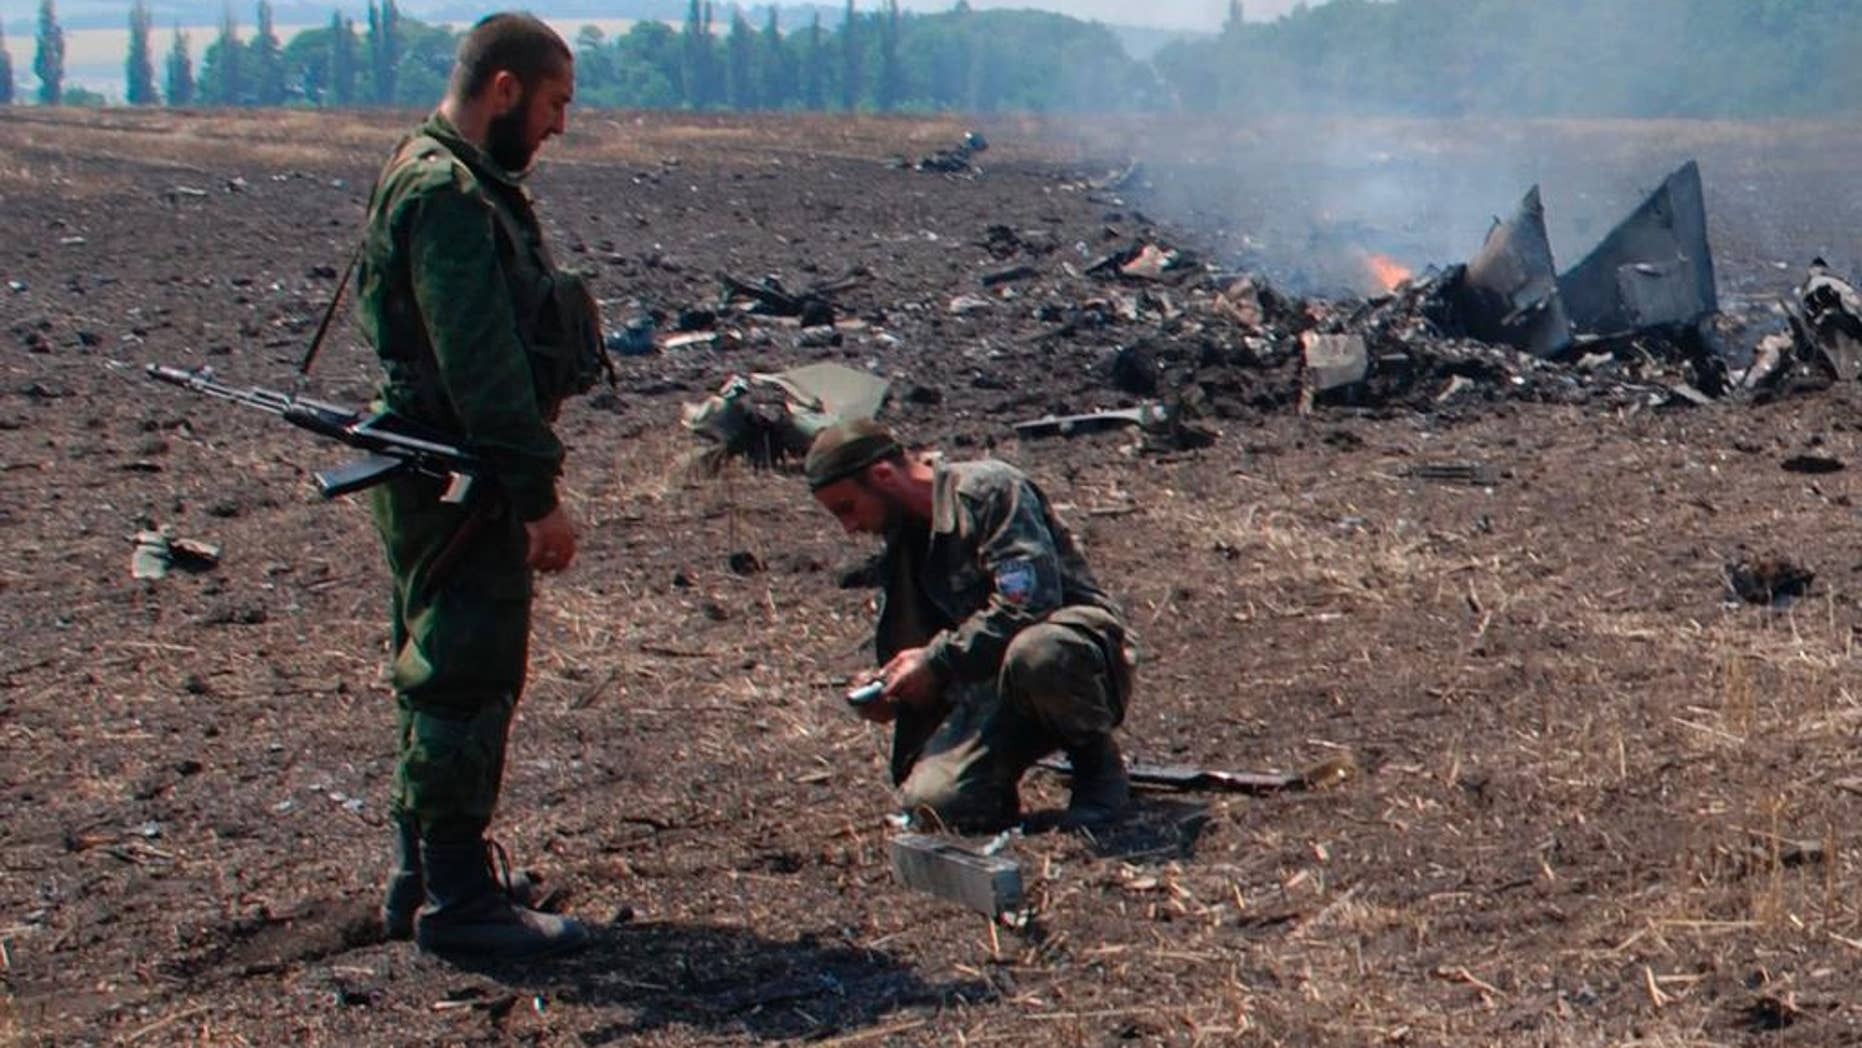 In this framegrab made from a video provided by press service of the rebel Donetsk People's Republic and icorpus.ru,  pro-Russians collect parts of the burning debris of a Ukrainian military fighter jet, shot down at Savur Mogila, eastern Ukraine, Wednesday, July 23, 2014. Two Ukrainian military Sukhoi-25 fighters have been shot down in the east, according to the country's Defense Ministry. (AP Photo/icorpus.ru, Press Service of the rebel Donetsk People's Republic)